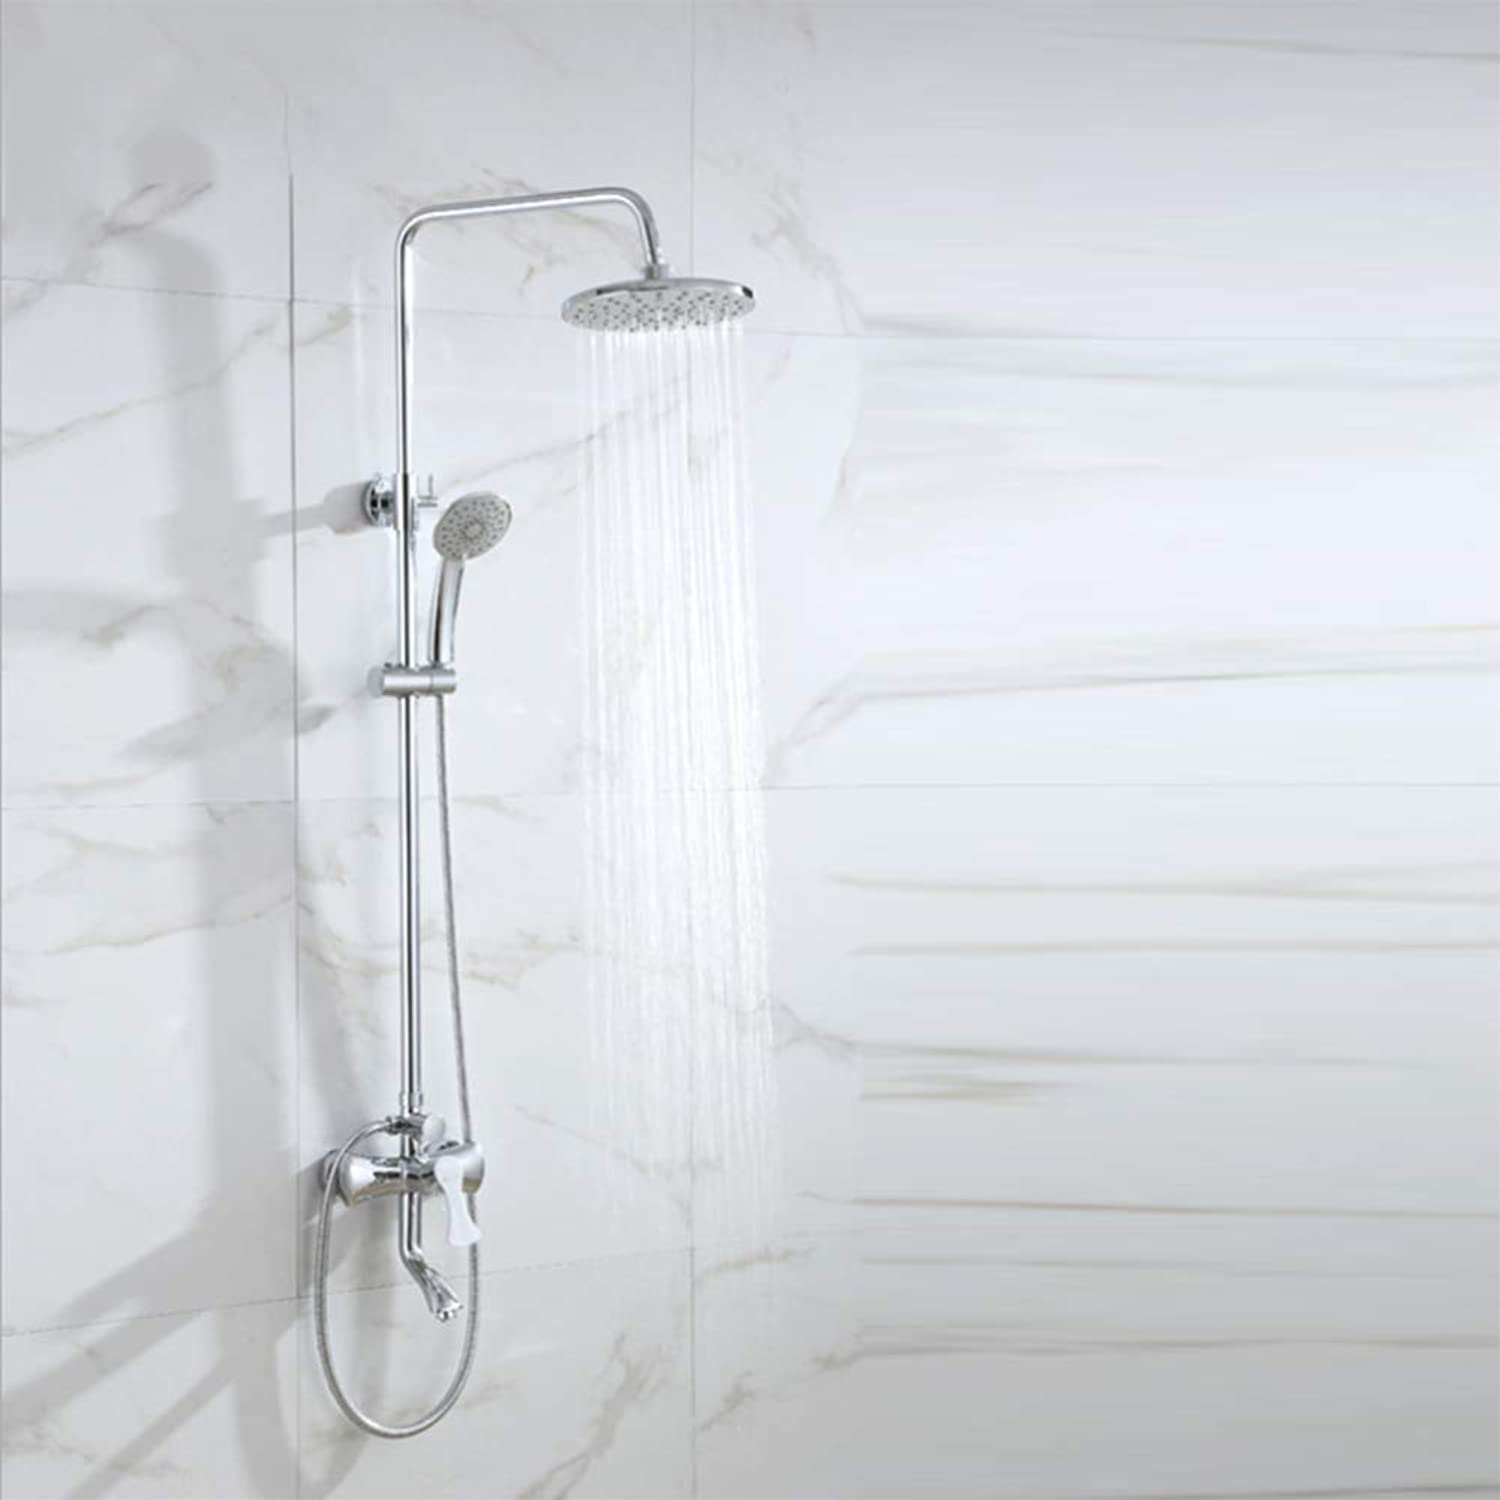 LPW shower set bathroom shower set copper shower concealed third gear shower set simple hand shower wall mounted shower